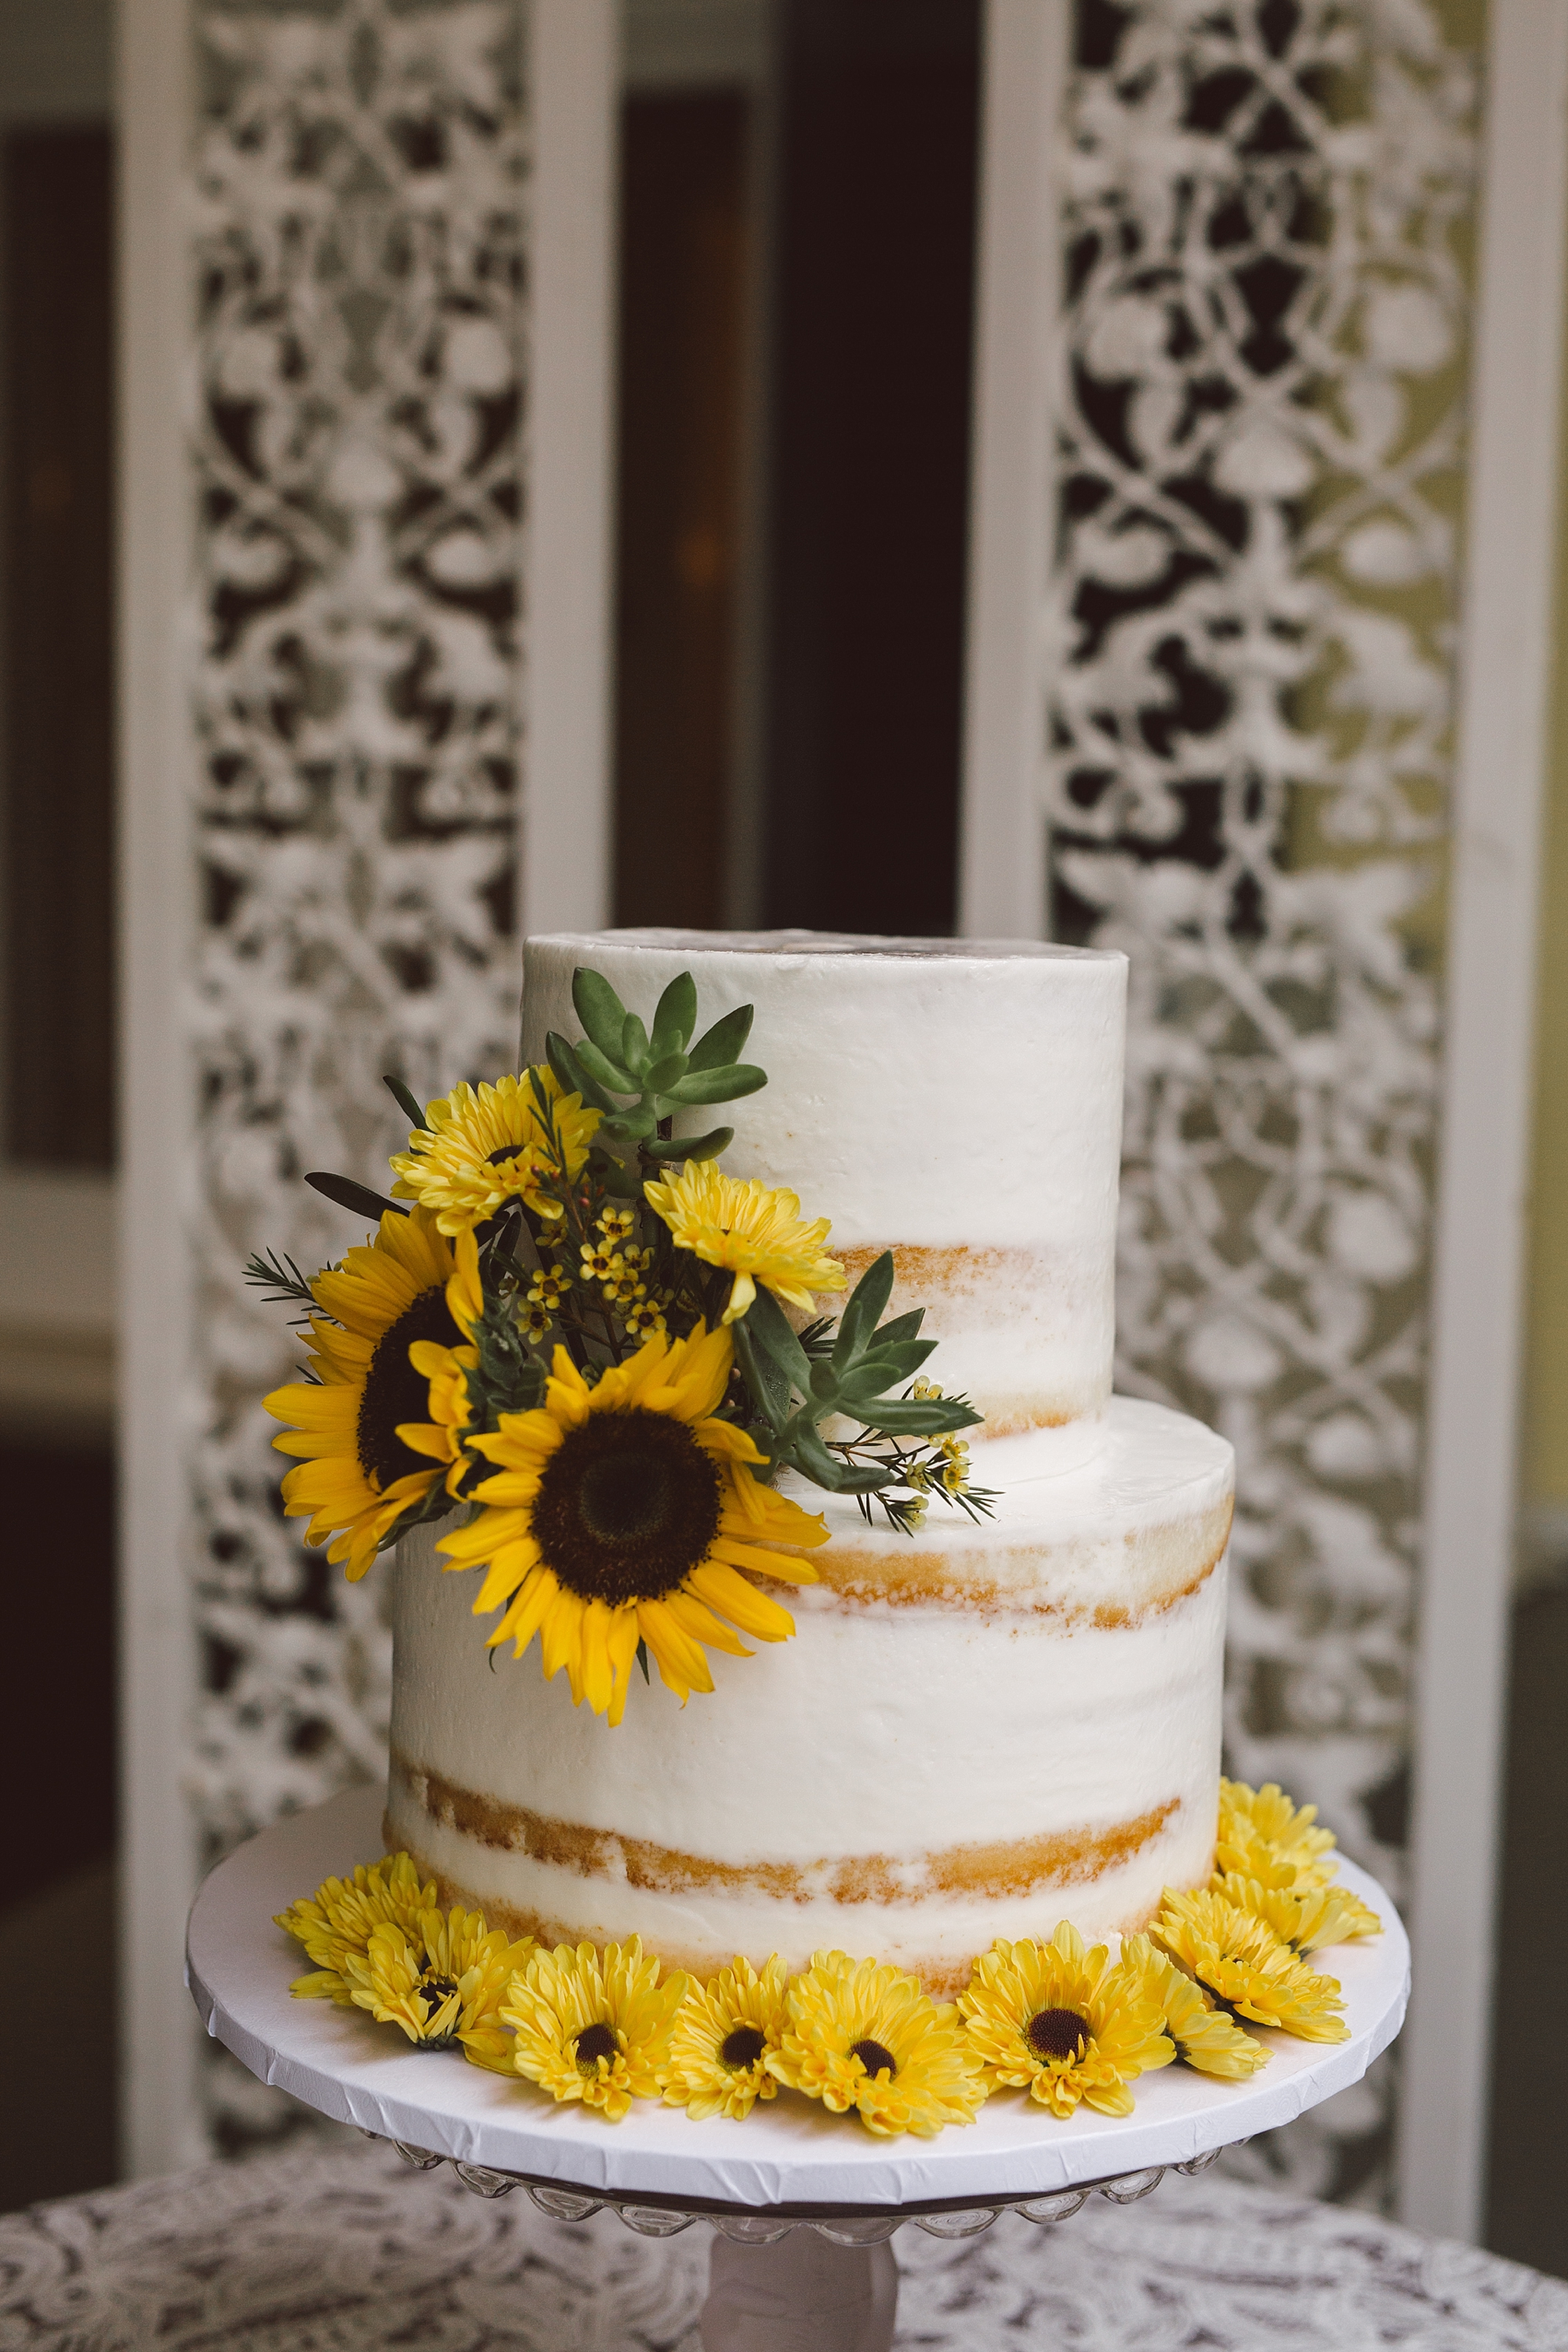 Druemore_Joe_Mac_Creative_Philadelphila_Wedding_Photography_drumore_estate_pequea_Best_lancaster_wedding_venues_0069.jpg